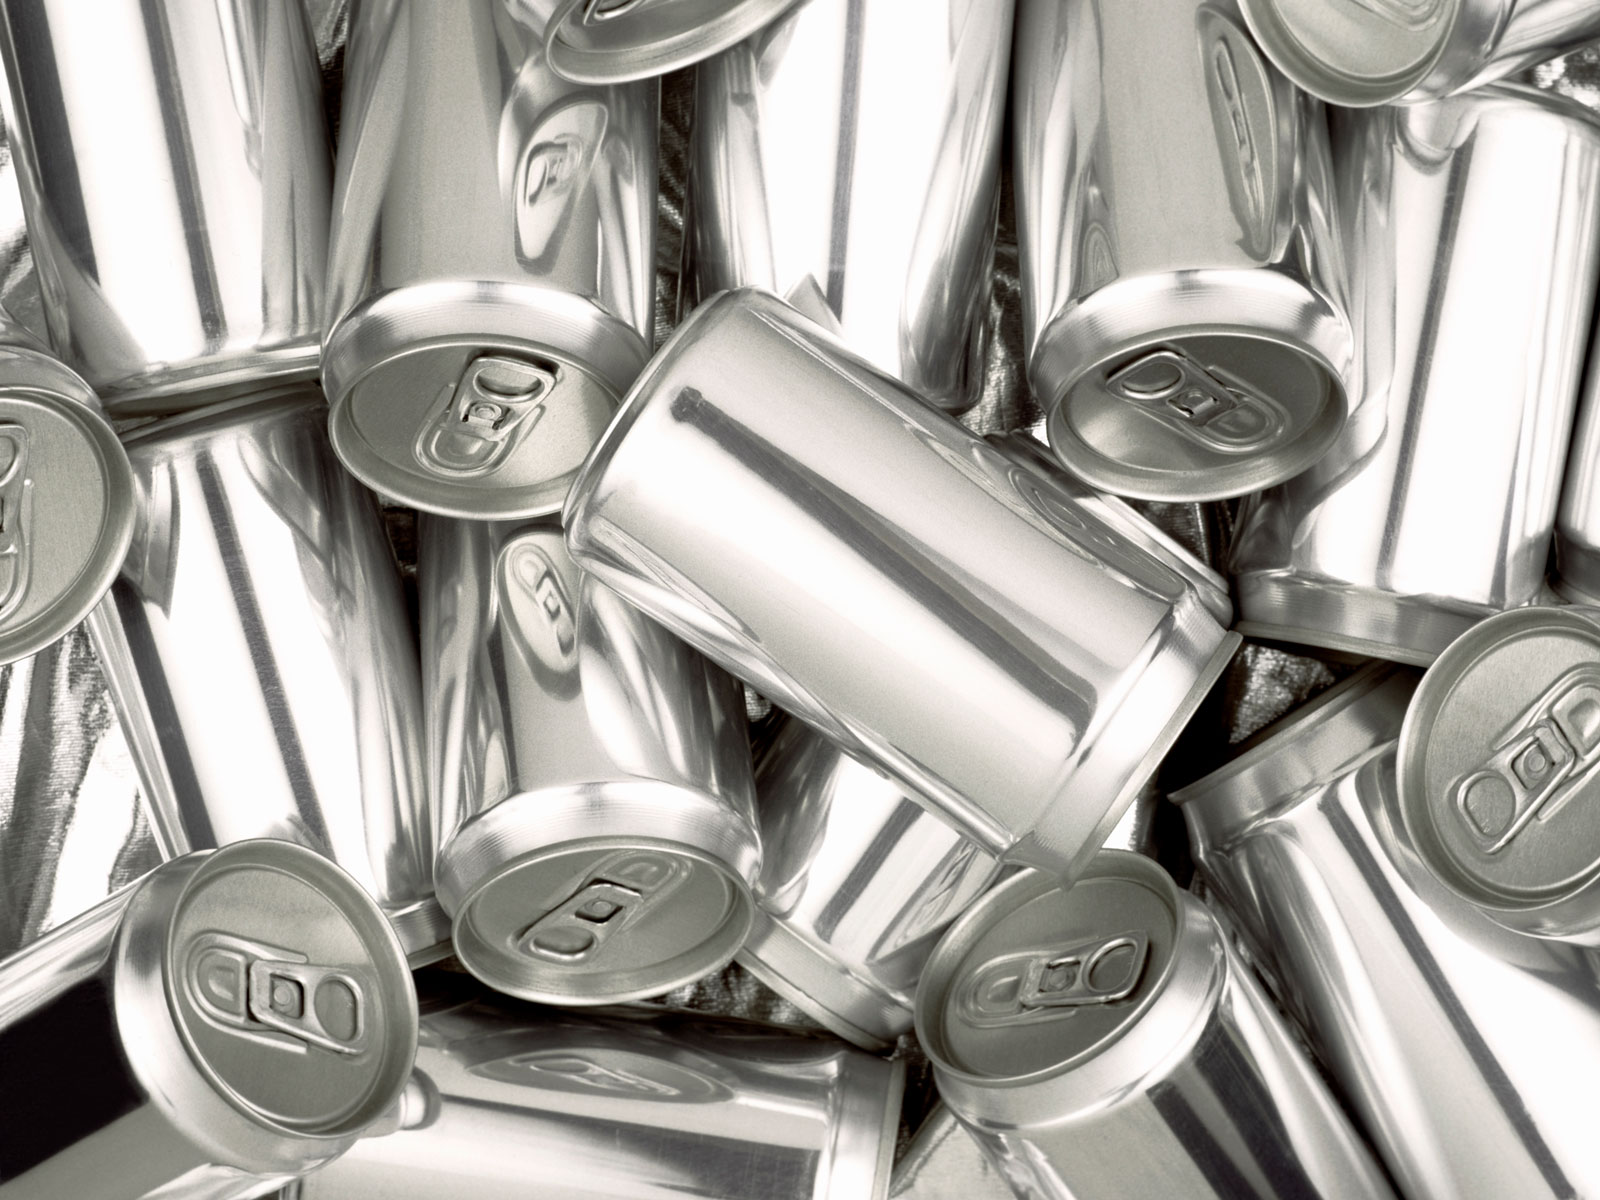 aluminum-tariffs-beer-industry-FT-BLOG0319.jpg